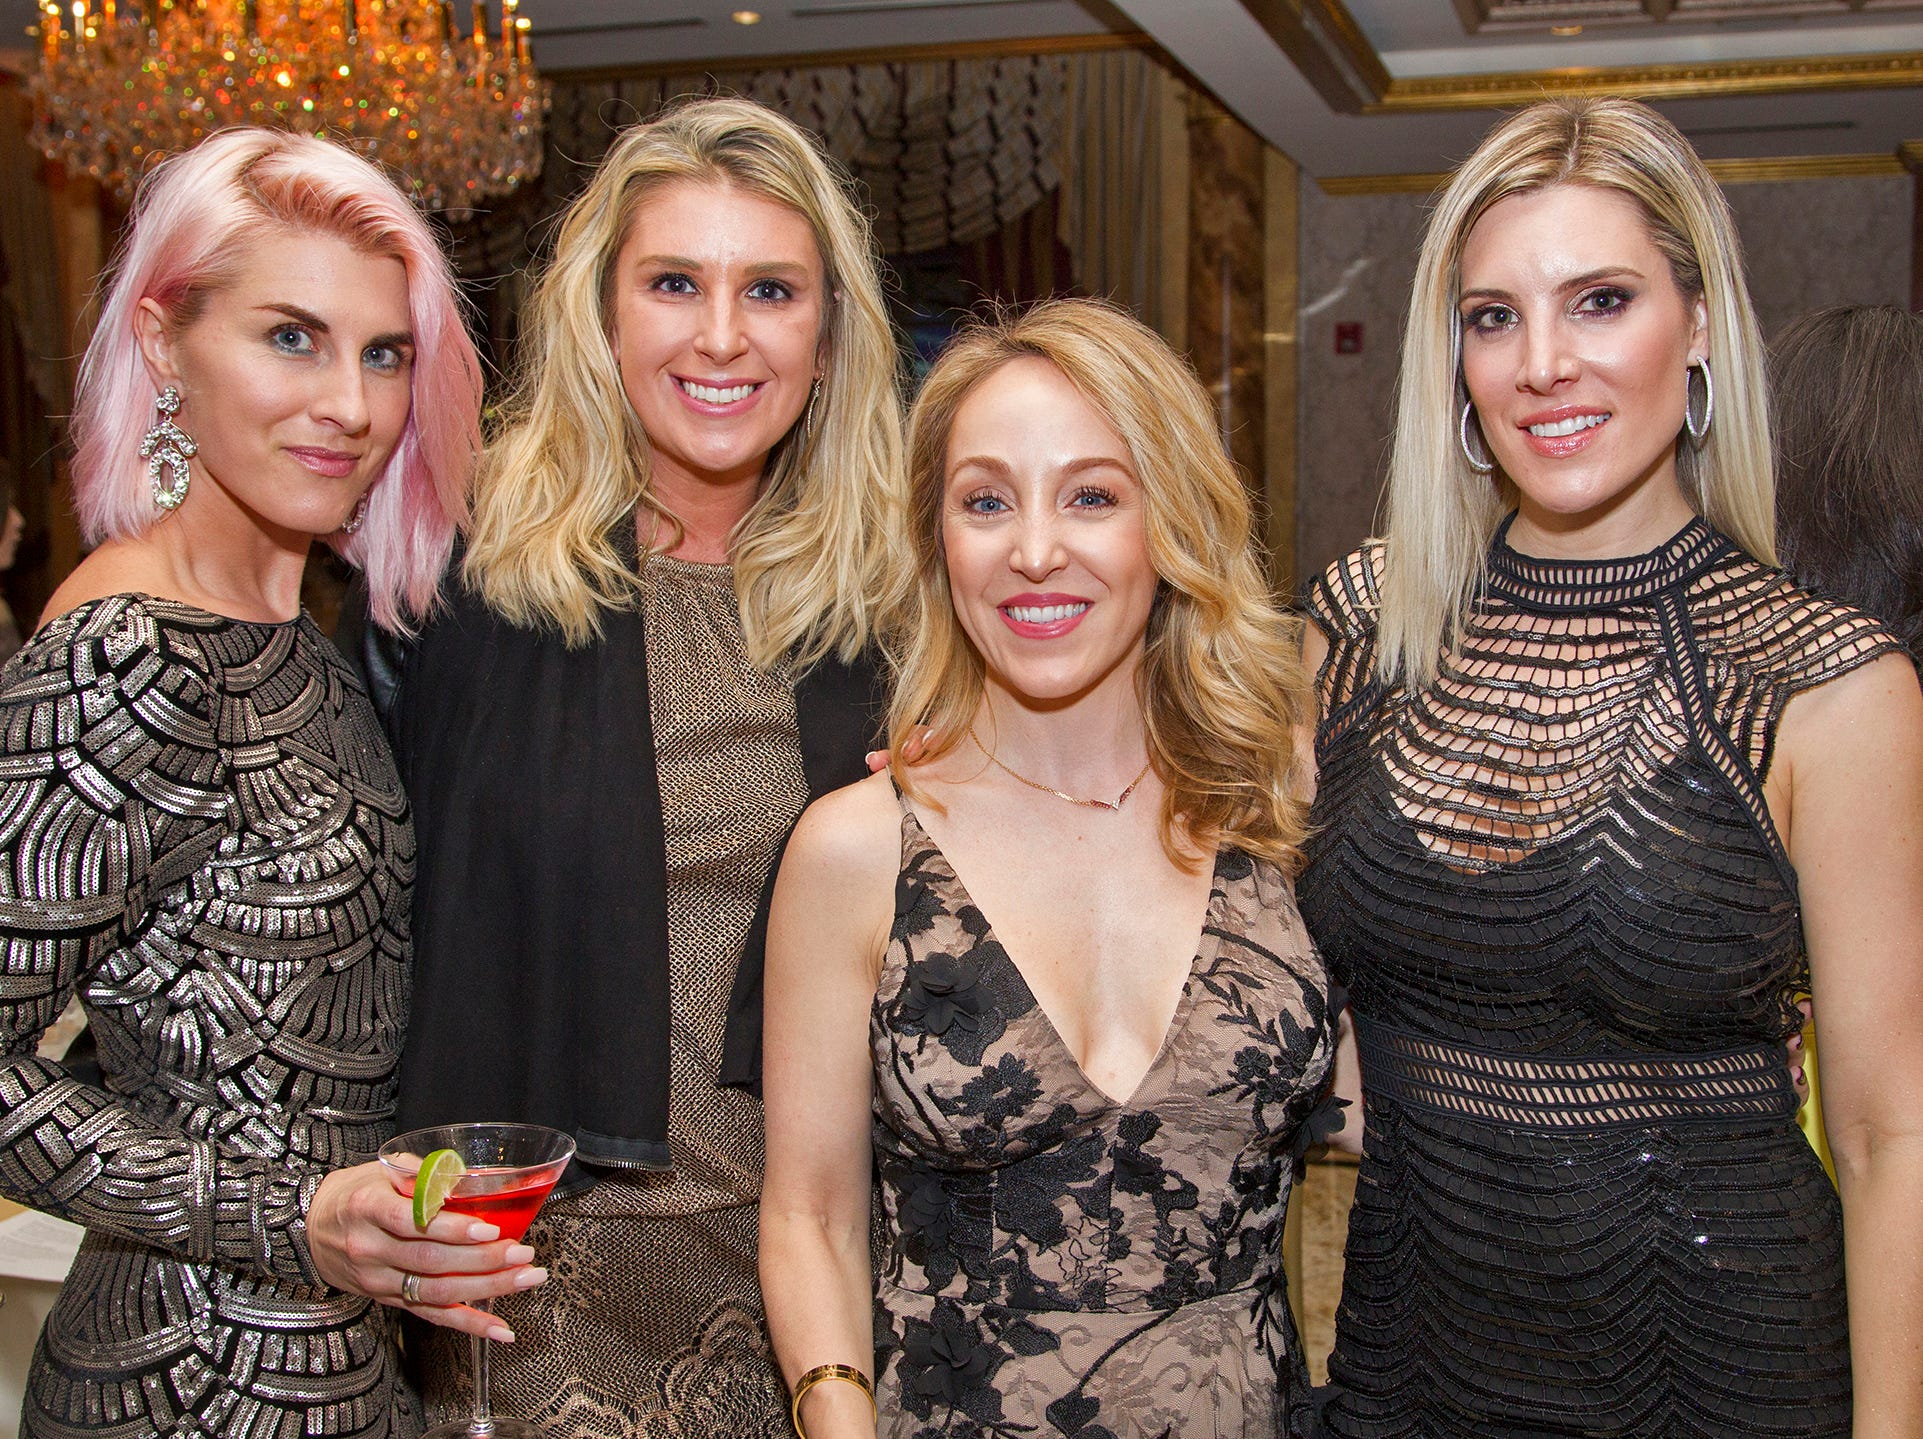 Crystal Parangi, ALlison Viar, enee Buzzelli, Eva Petrone. Upper Saddle River Education Foundation hosted its Town Night Out Gala at Seasons in Washington Twp. 04/06/2019